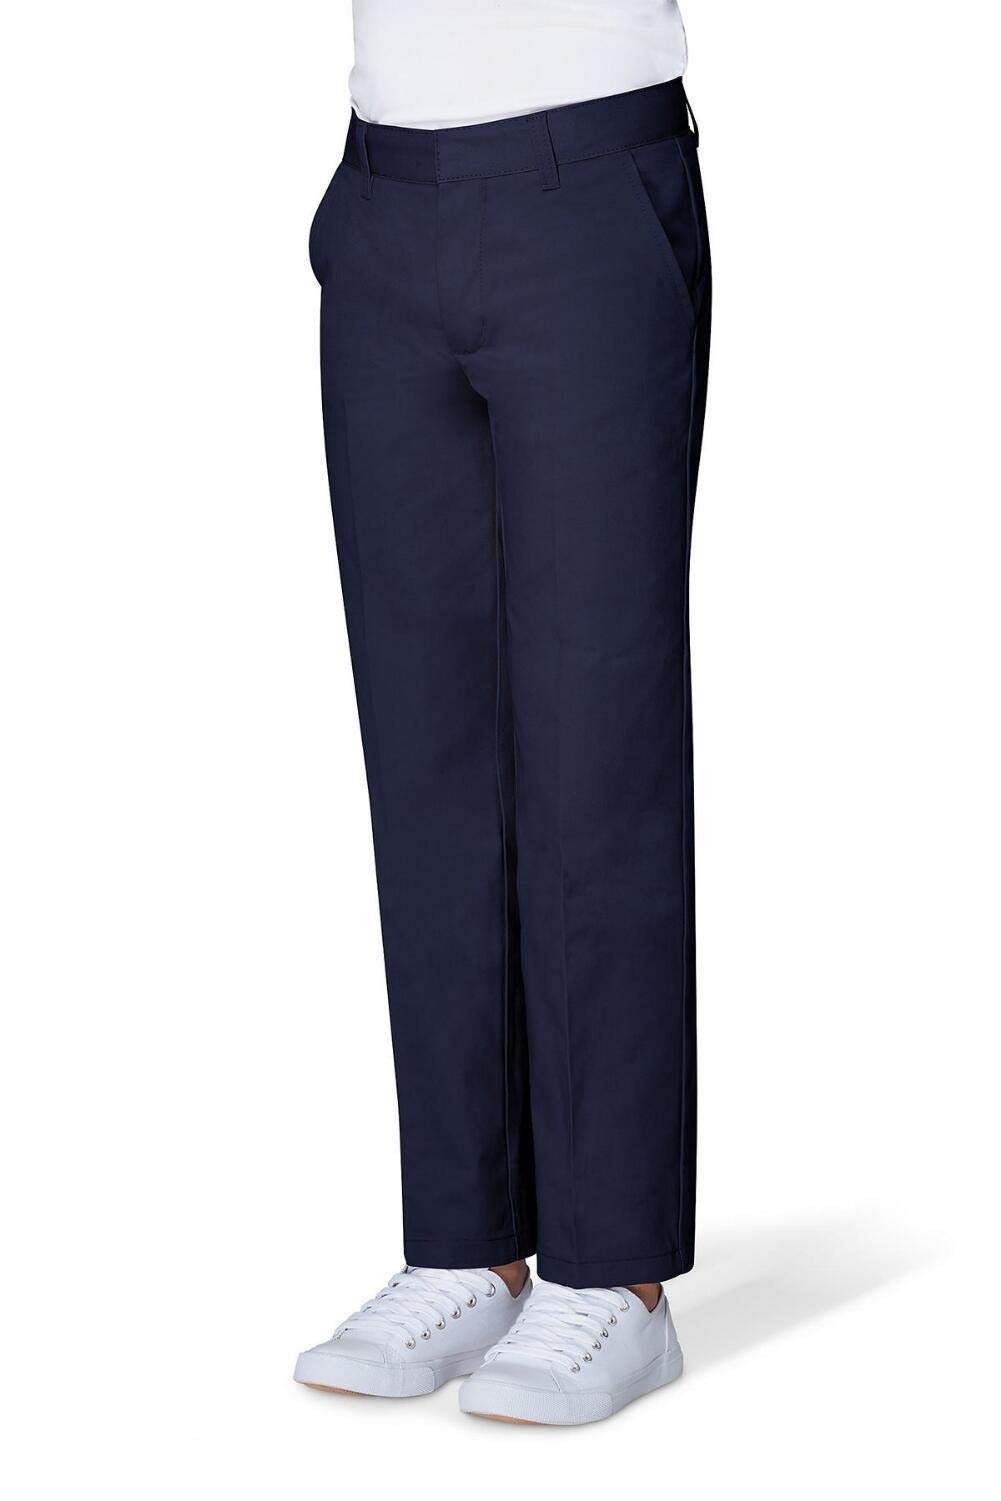 French Toast Big Boys' Flat Front Double Knee Pant with Adjacent Waist, Navy, 8